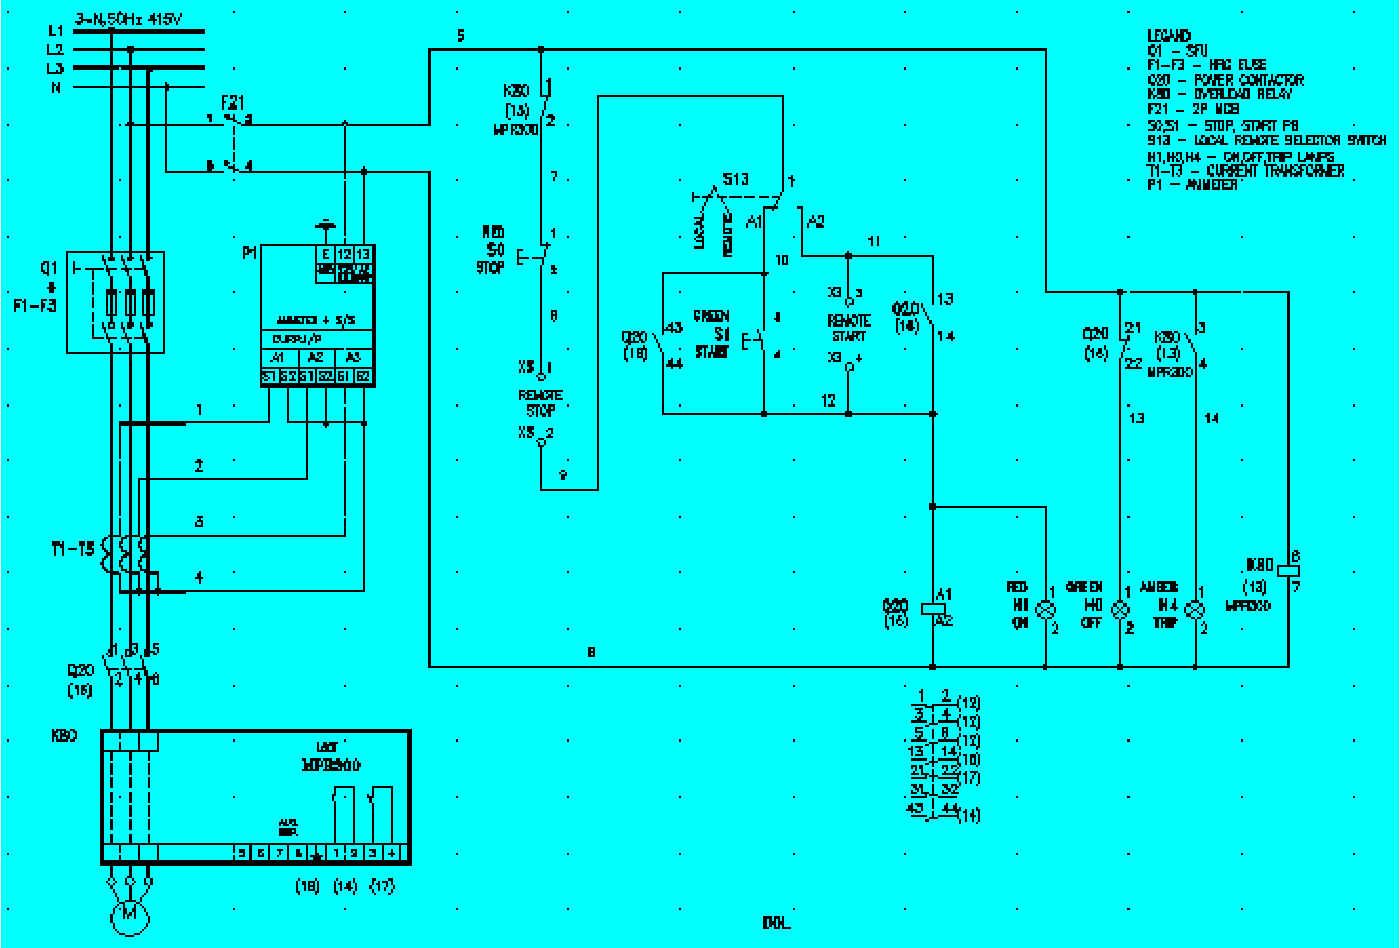 Abb Vfd Control Wiring Smart Diagrams Diagram Sipro Tech Switchboard And Panel Design Service